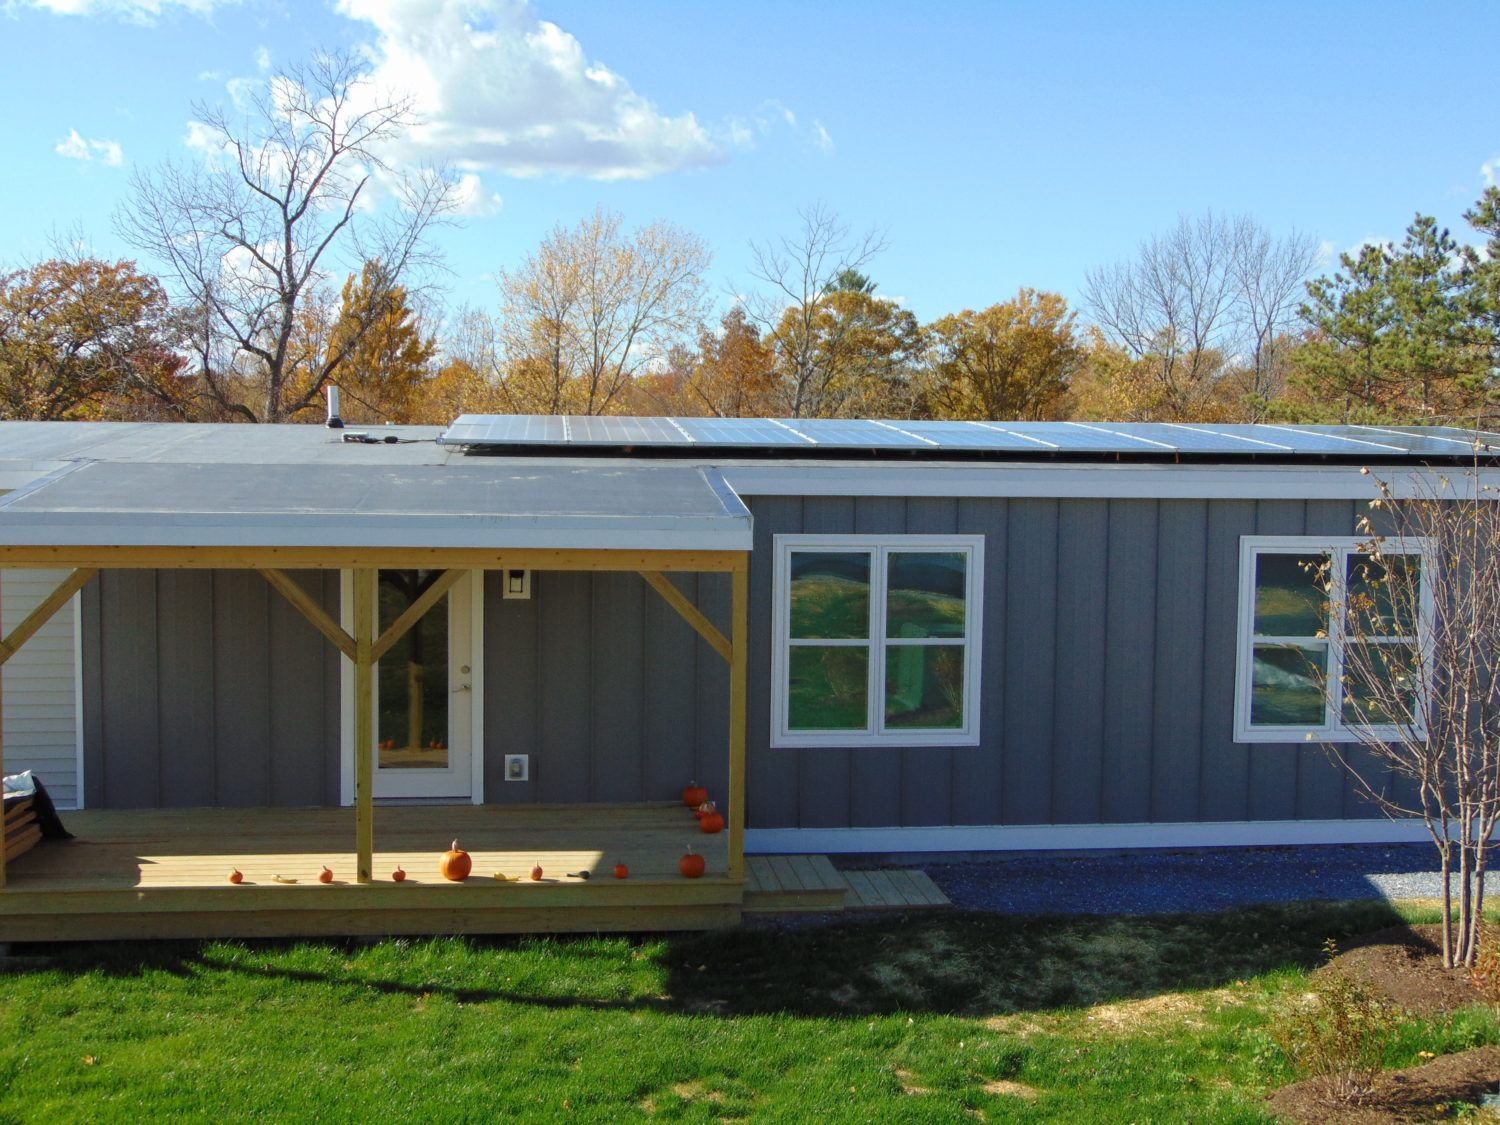 Vermont Affordable Housing Development Sets New Standard For Resilient Zero Energy Homes Affordable Housing Sustainable Design Outdoor Structures